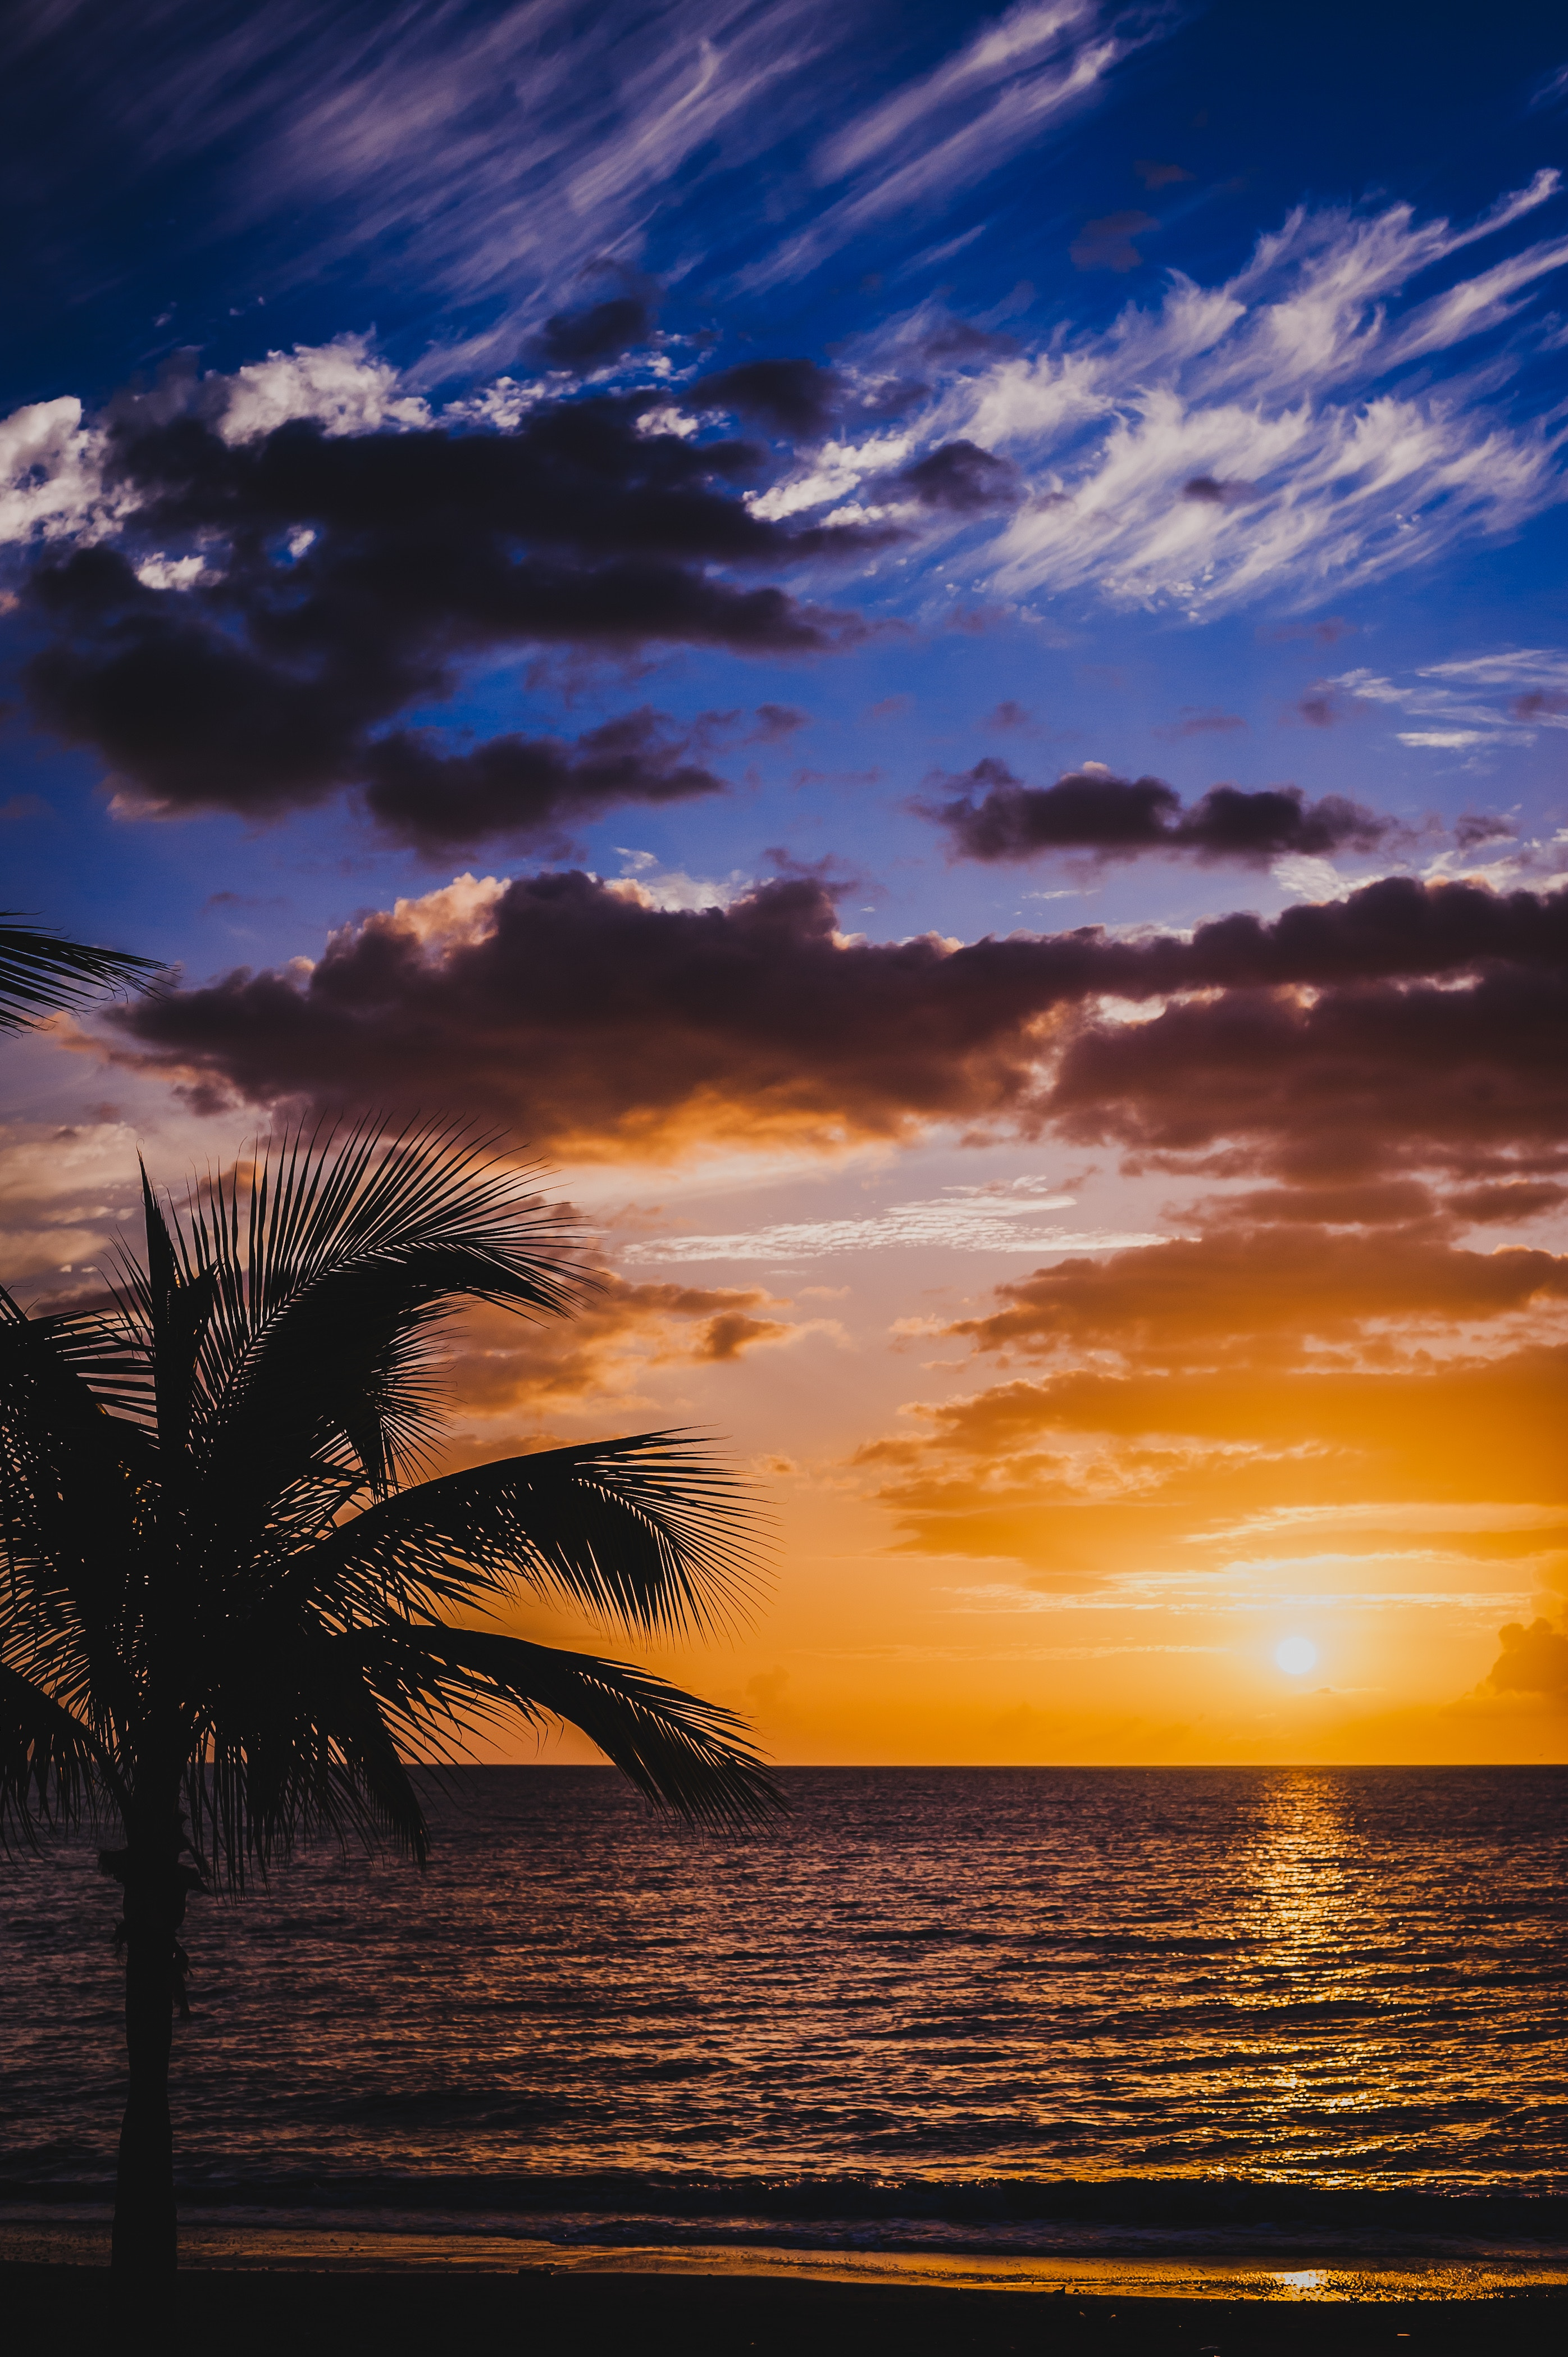 139460 download wallpaper Nature, Palm, Sea, Sunset, Surf, Horizon, Sky, Clouds screensavers and pictures for free